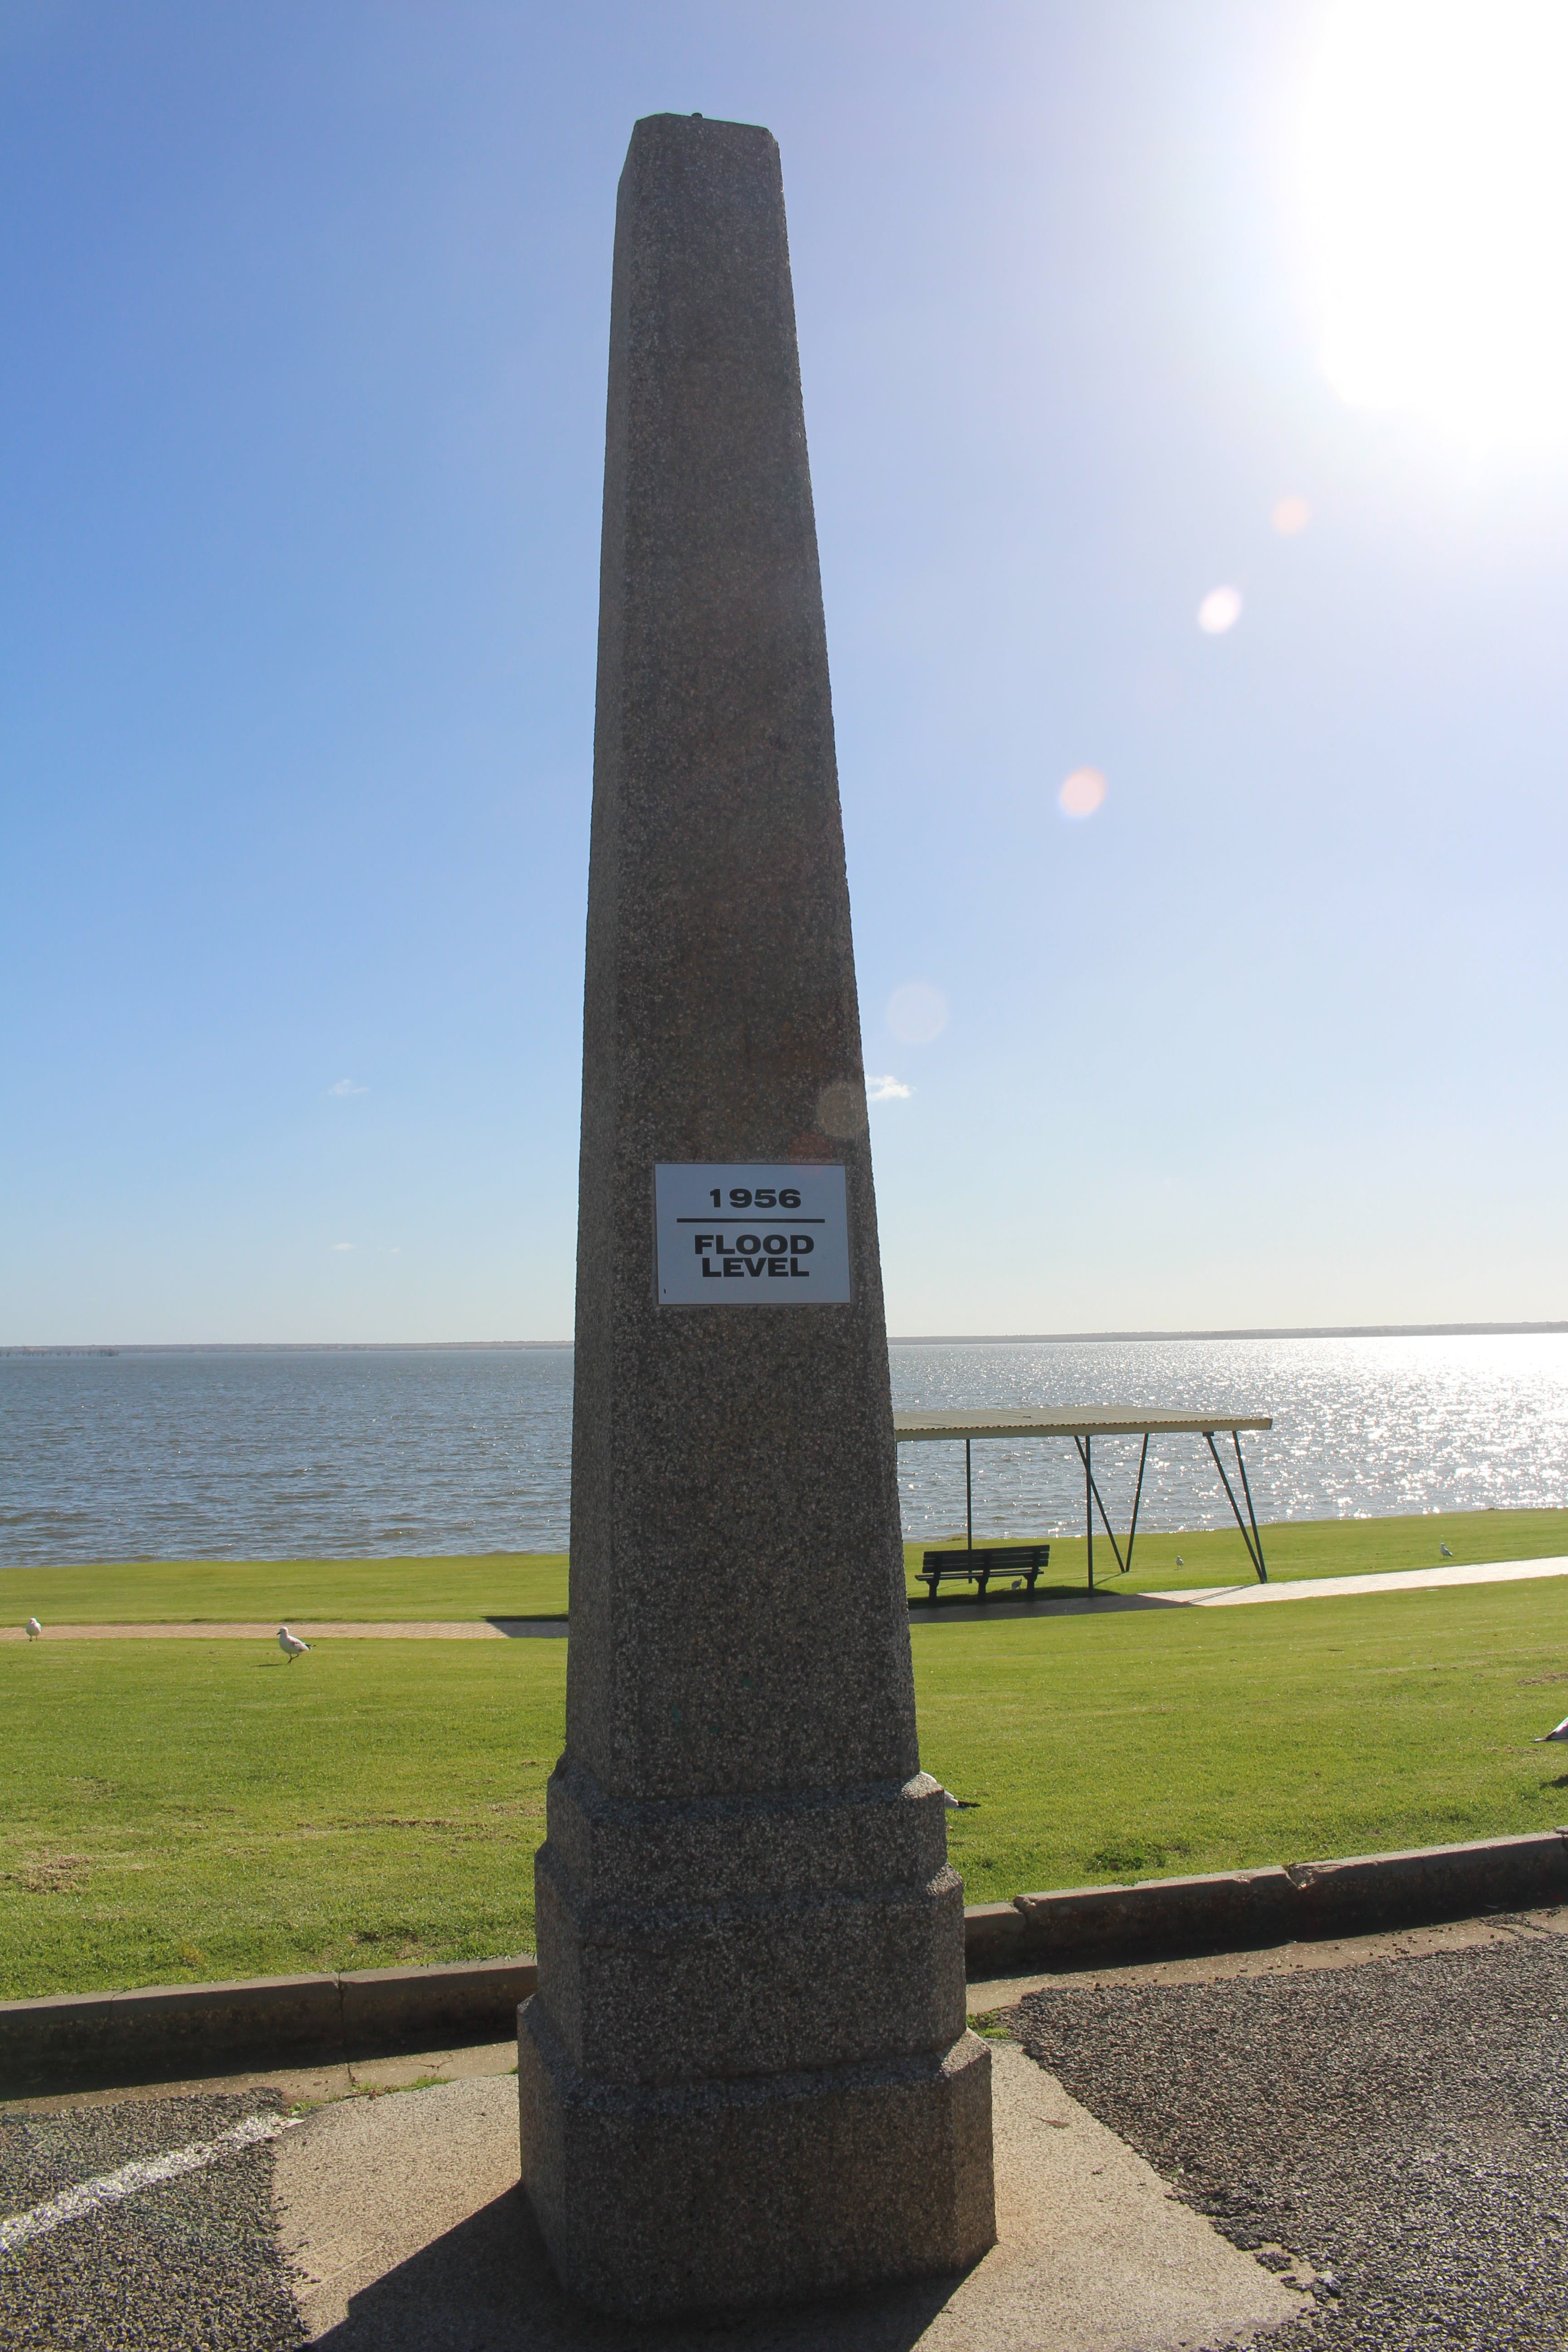 1956 Flood Marker - Australia Accommodation